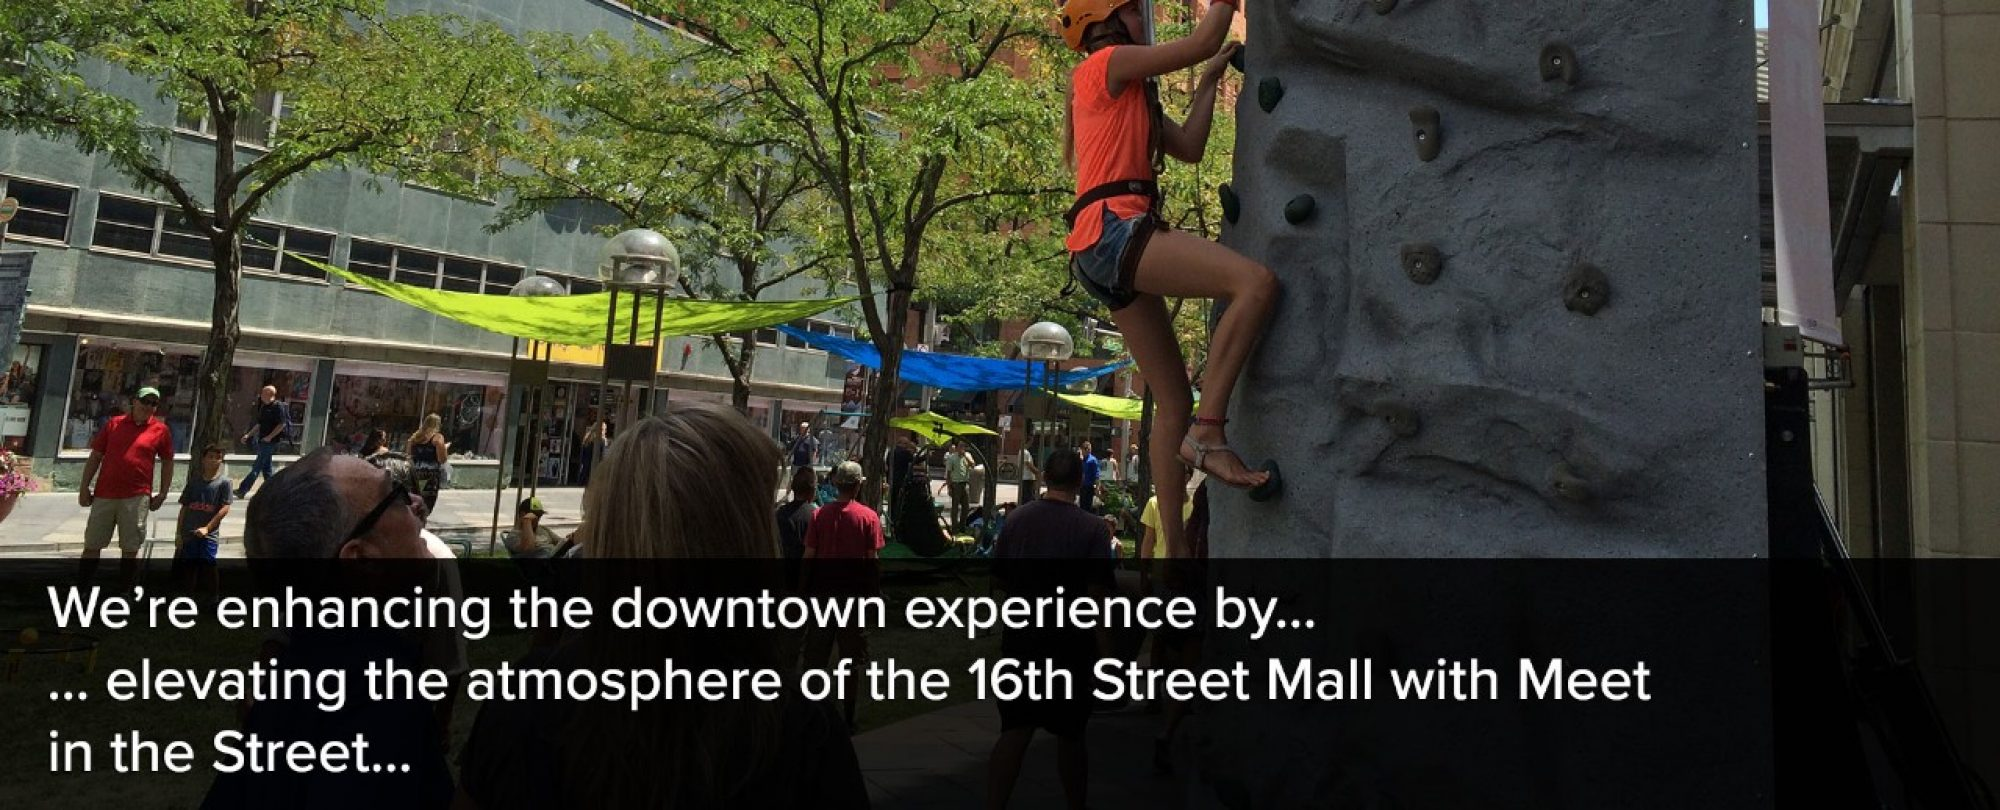 Photo of a climbing wall during a 16th Street Mall 'Meet in the Street' event as part of an effort to enhance the Downtown Denver experience